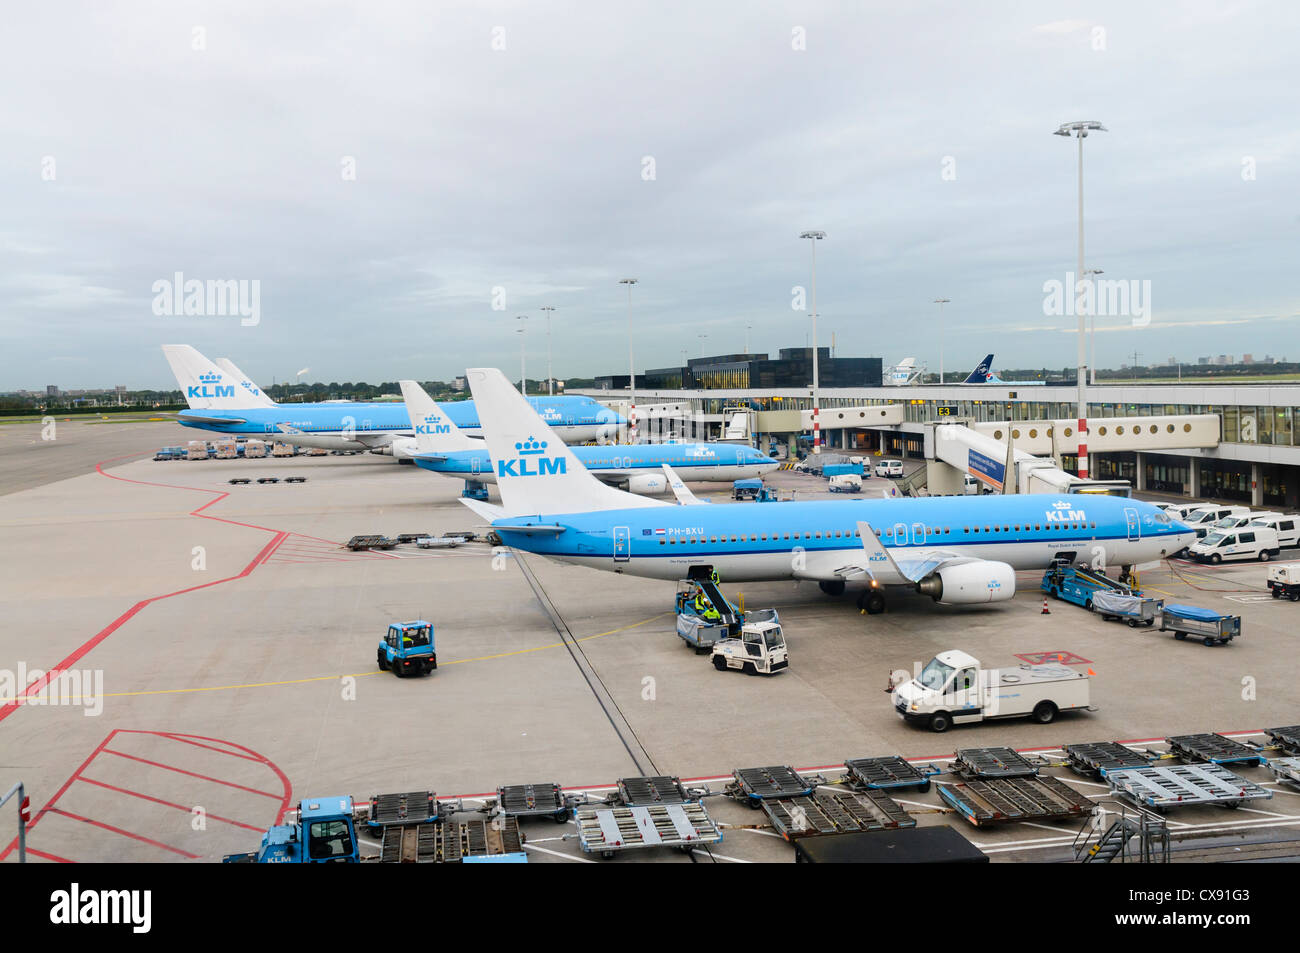 Air France KLM planes on the apron of Amsterdam Schiphol Airport with service vehicles Stock Photo